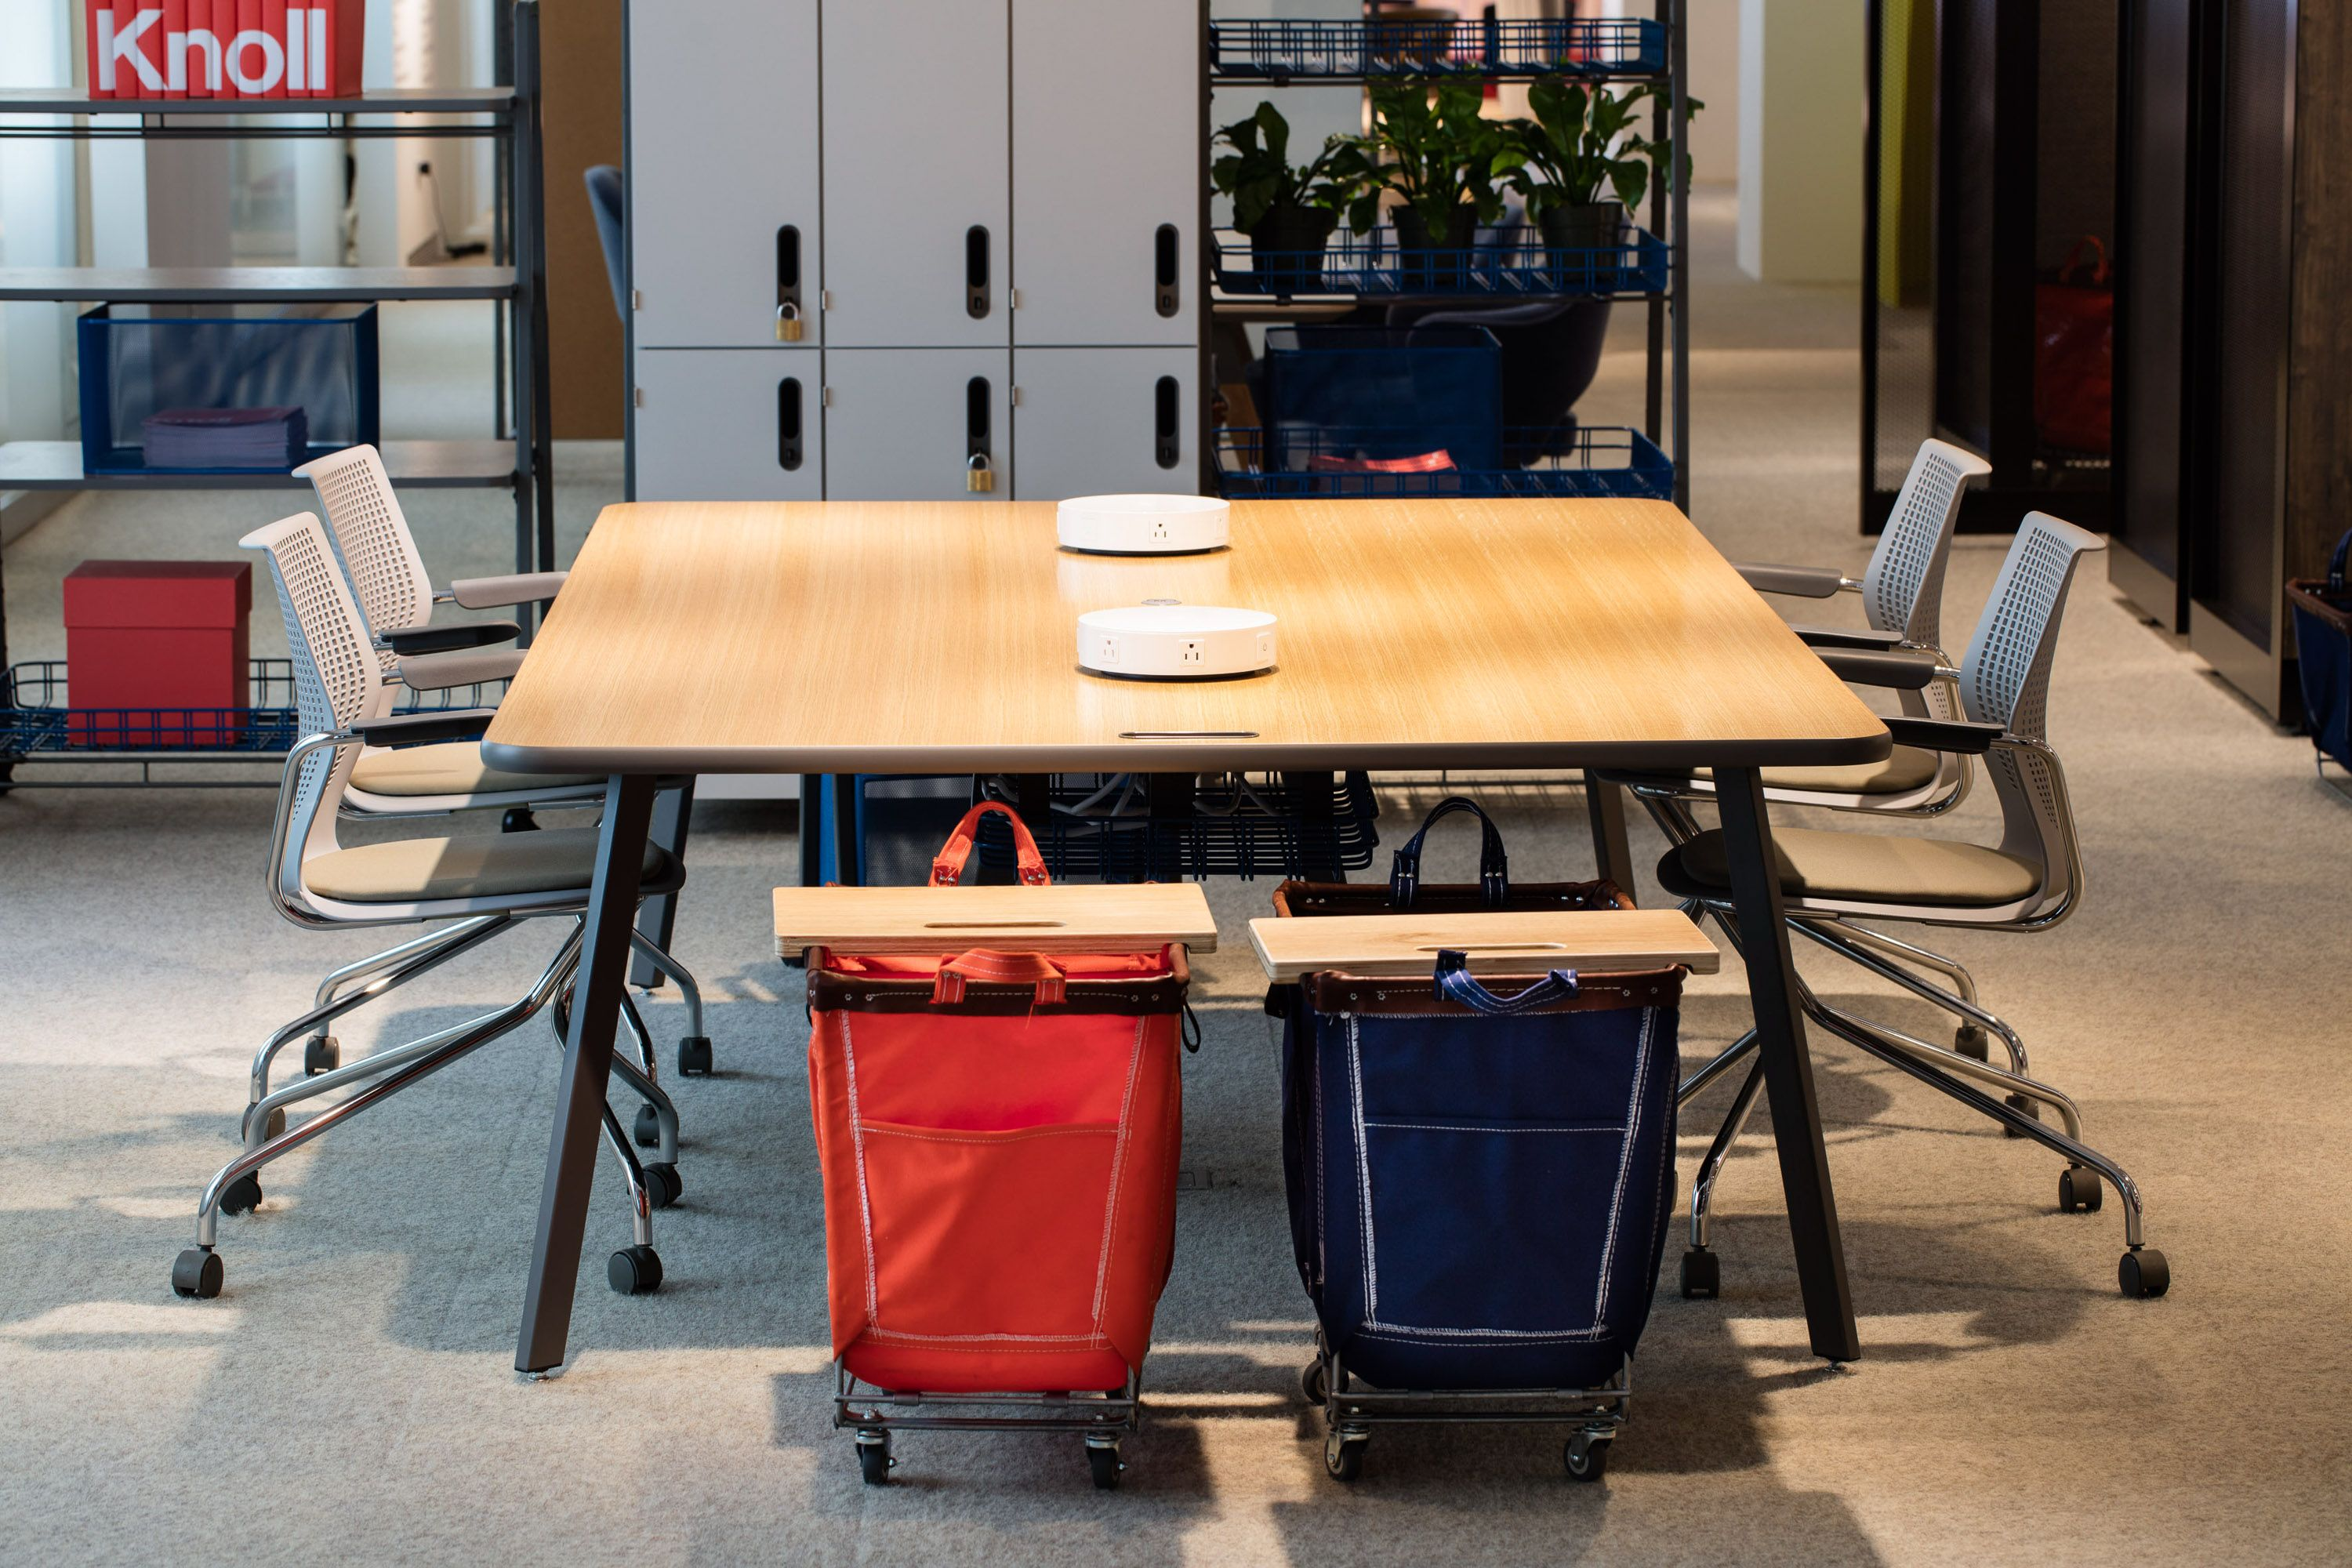 Rockwell Unscripted Easy Table: The Warm Expression Of Wood And Curved  Touchpoints Of Unscripted Tables Bring Hospitality And An Approachable Air  To The ...